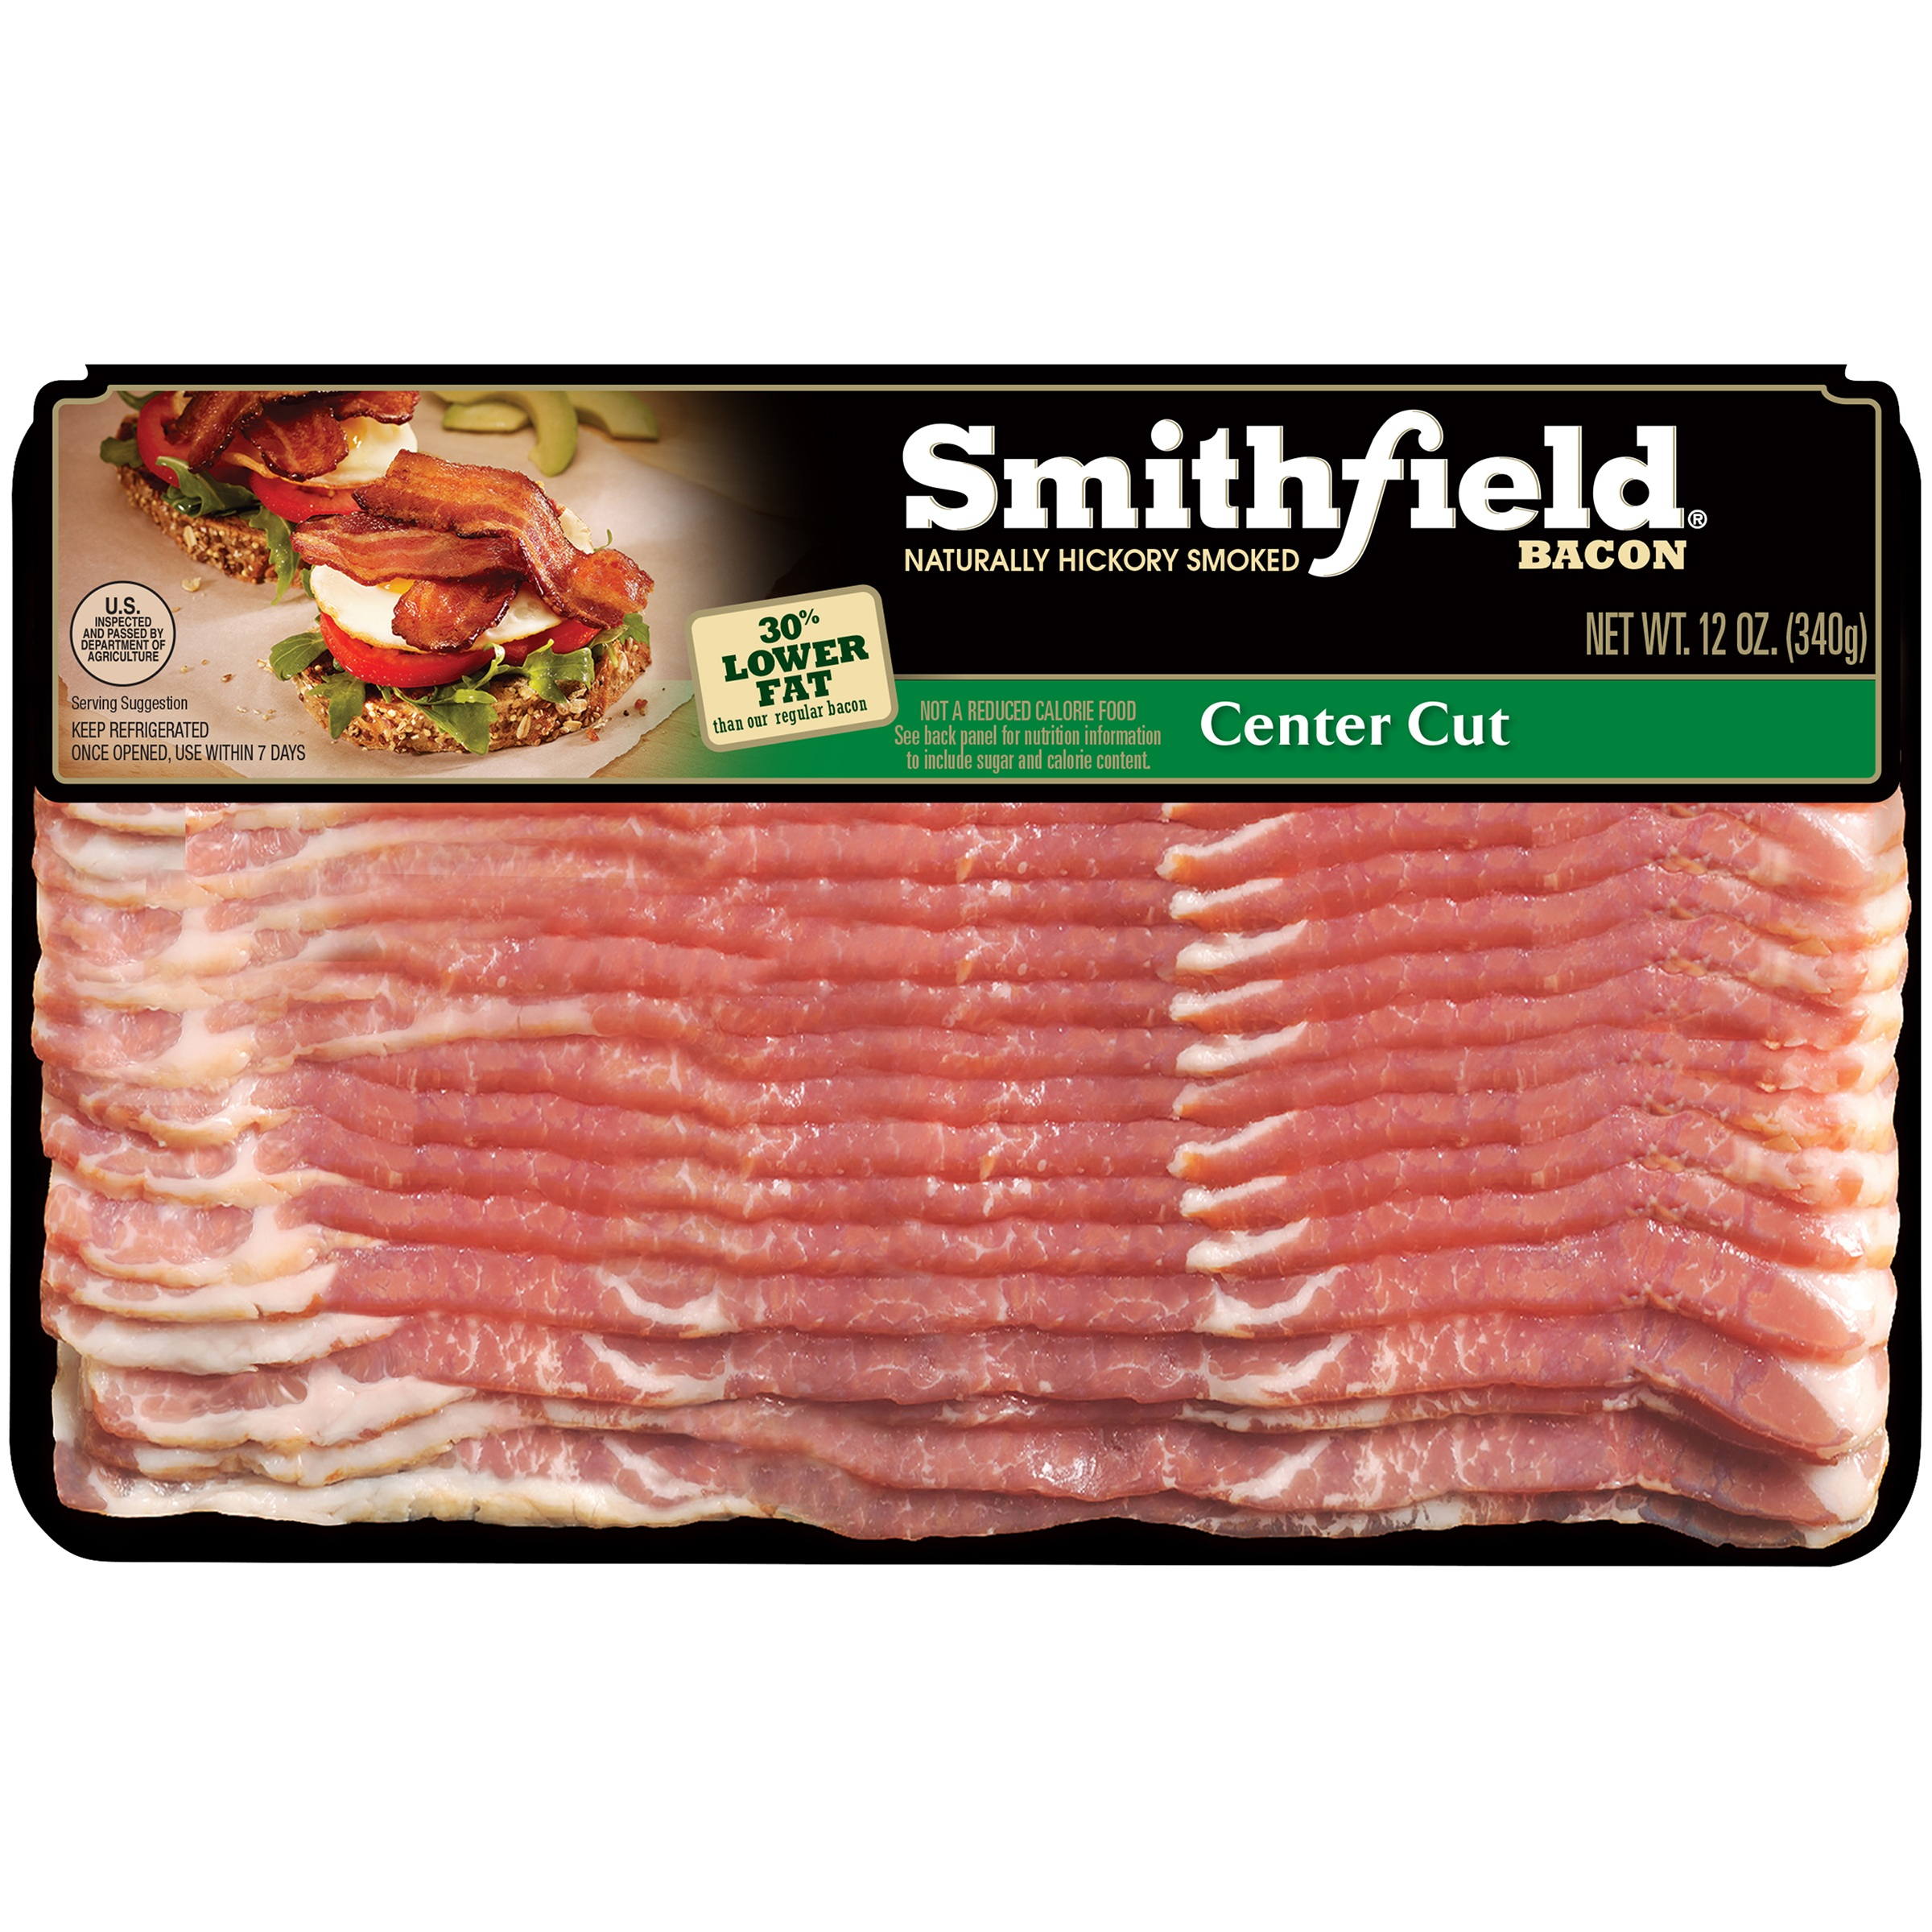 Smithfield® Naturally Hickory Smoked Center Cut Bacon 12 oz. Pack